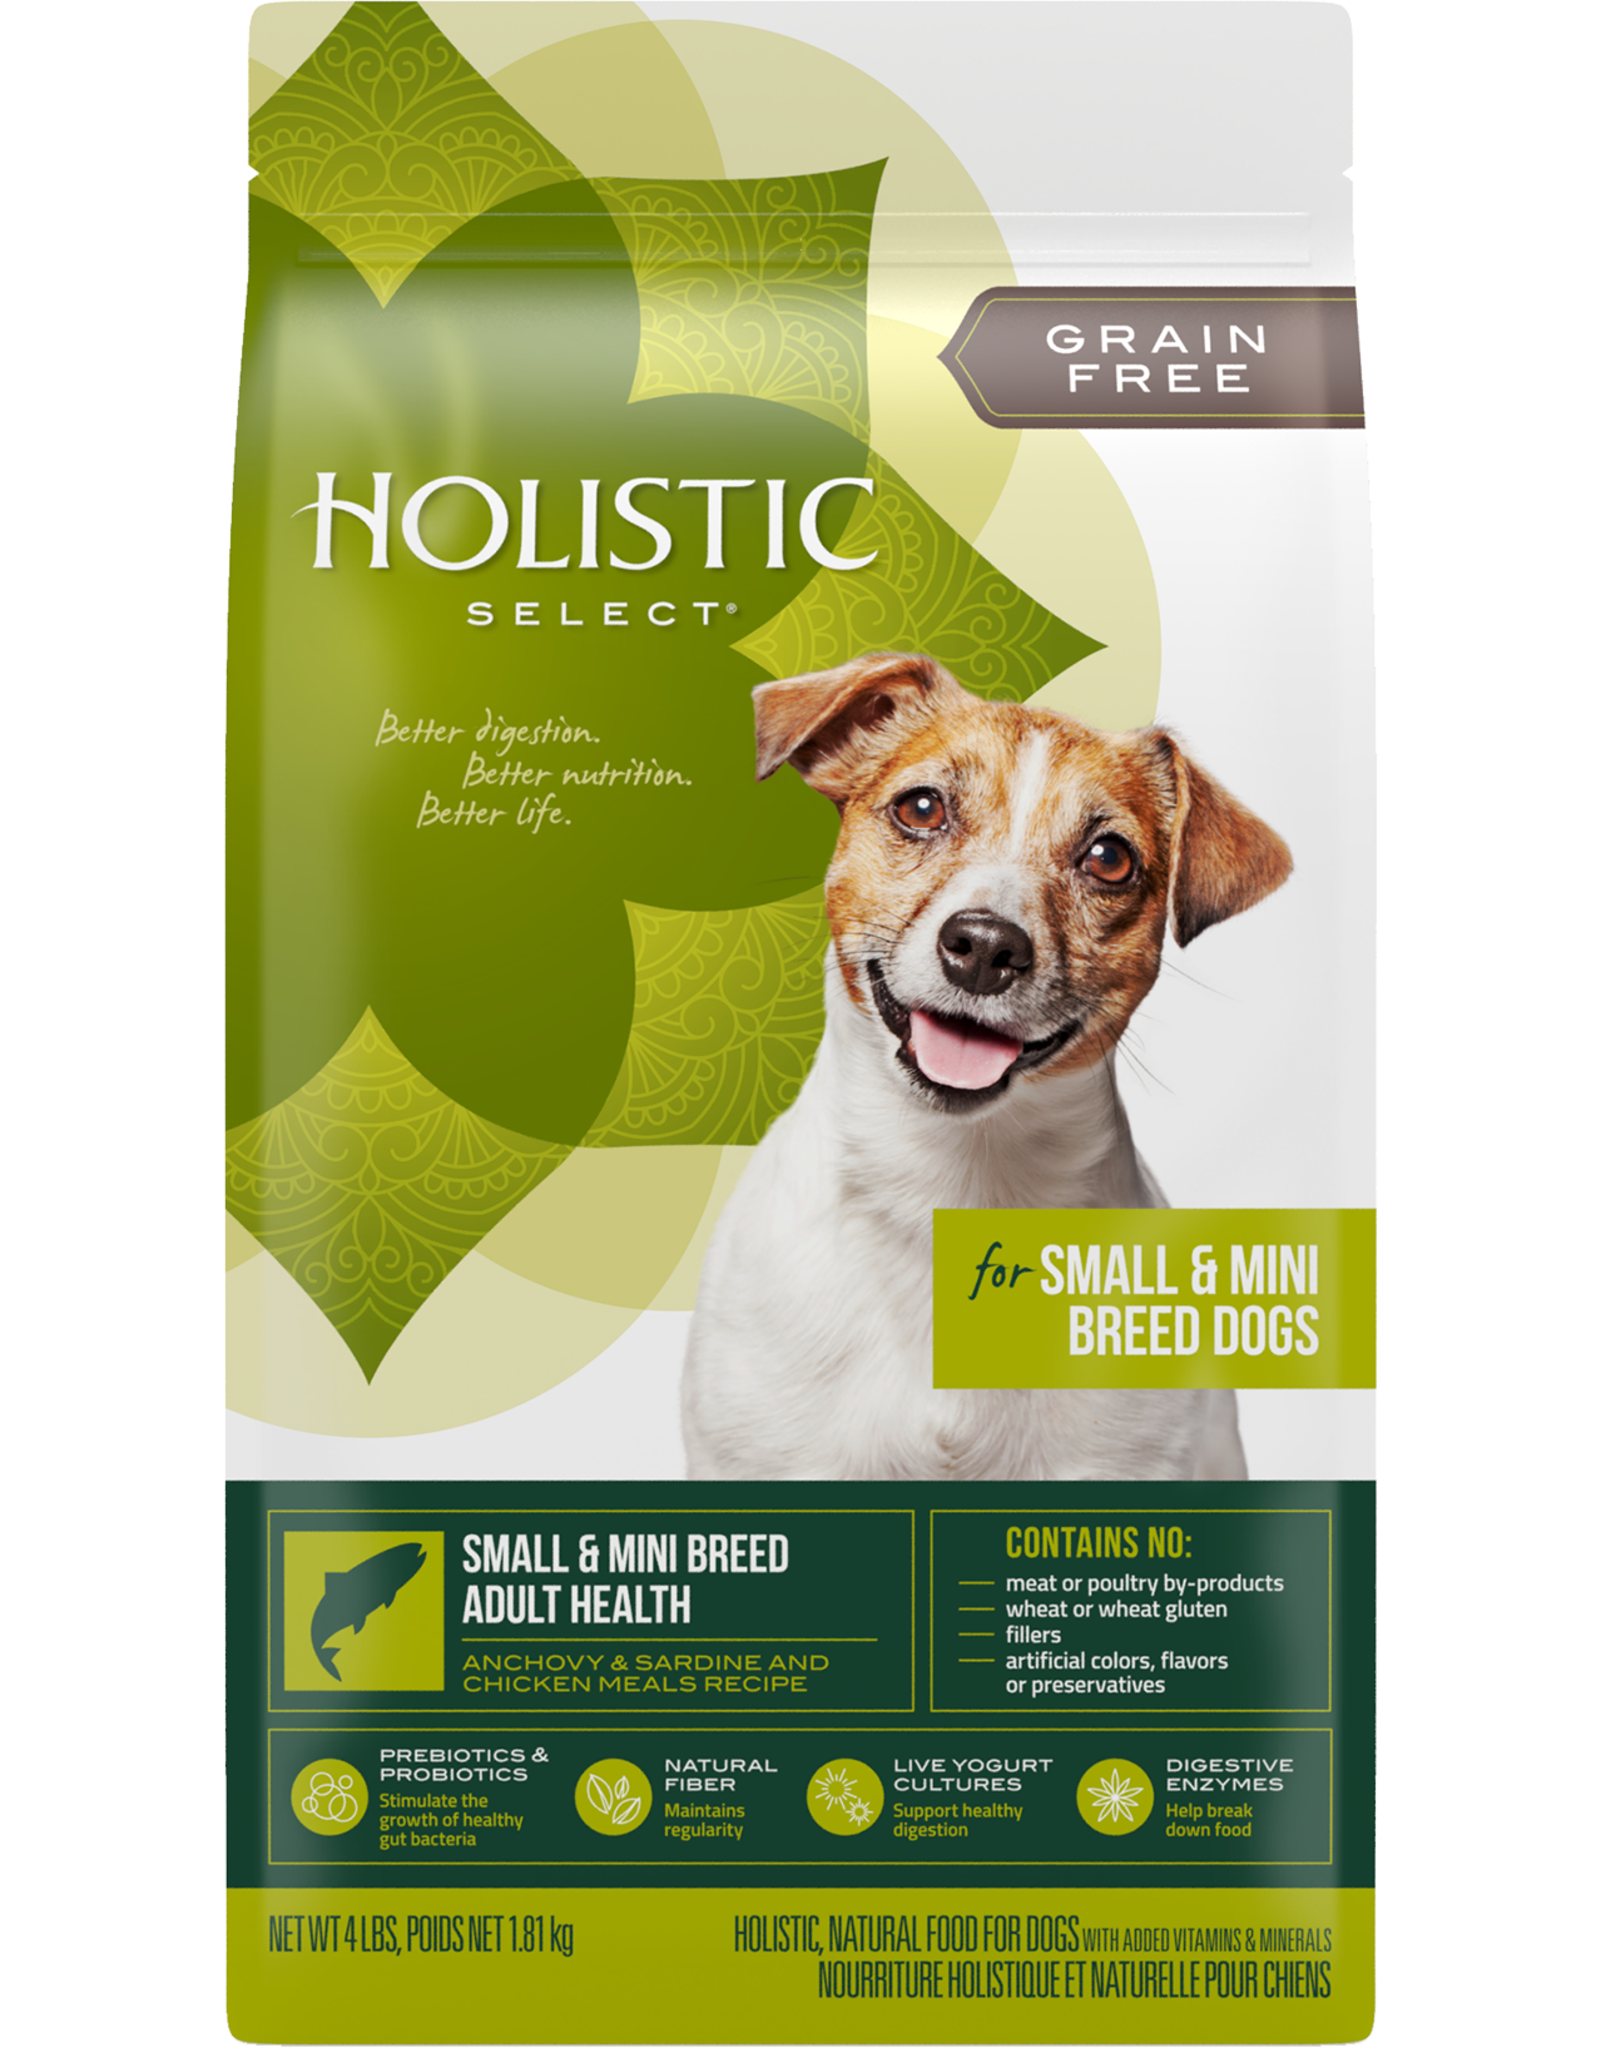 Wellpet Holistic Select: